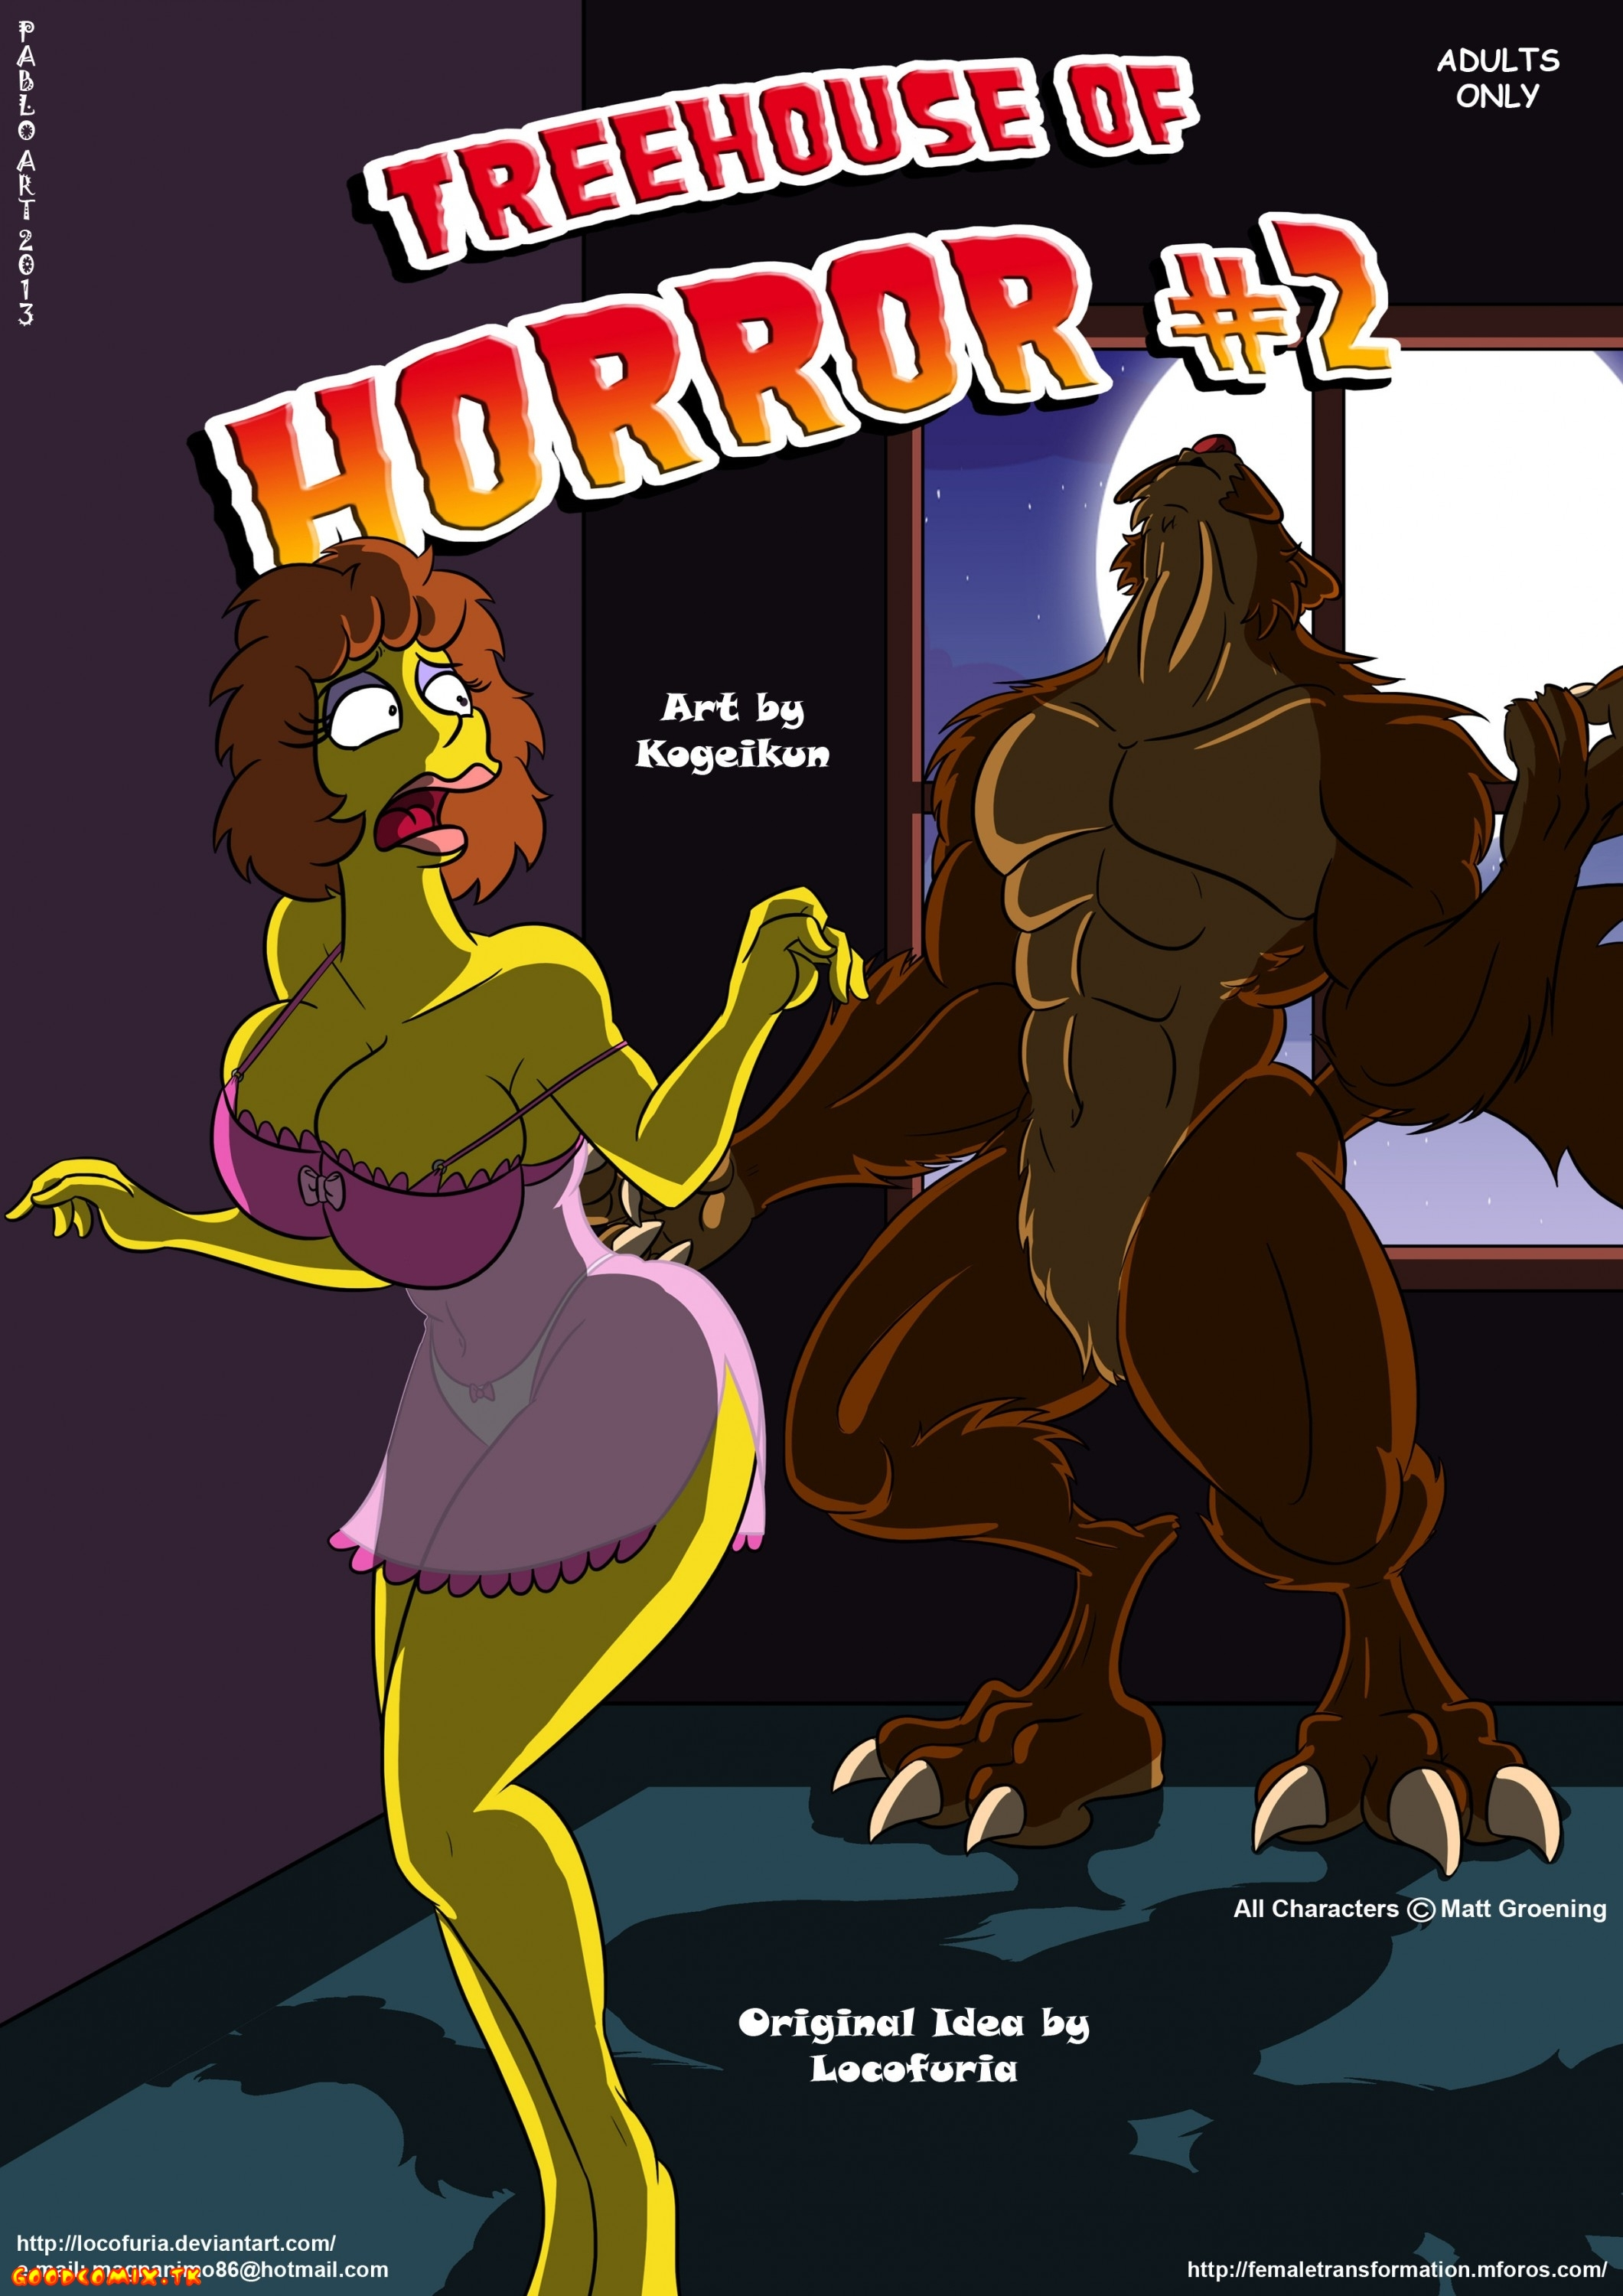 Goodcomix The Simpsons - [Locofuria] - Treehouse of Horror 2